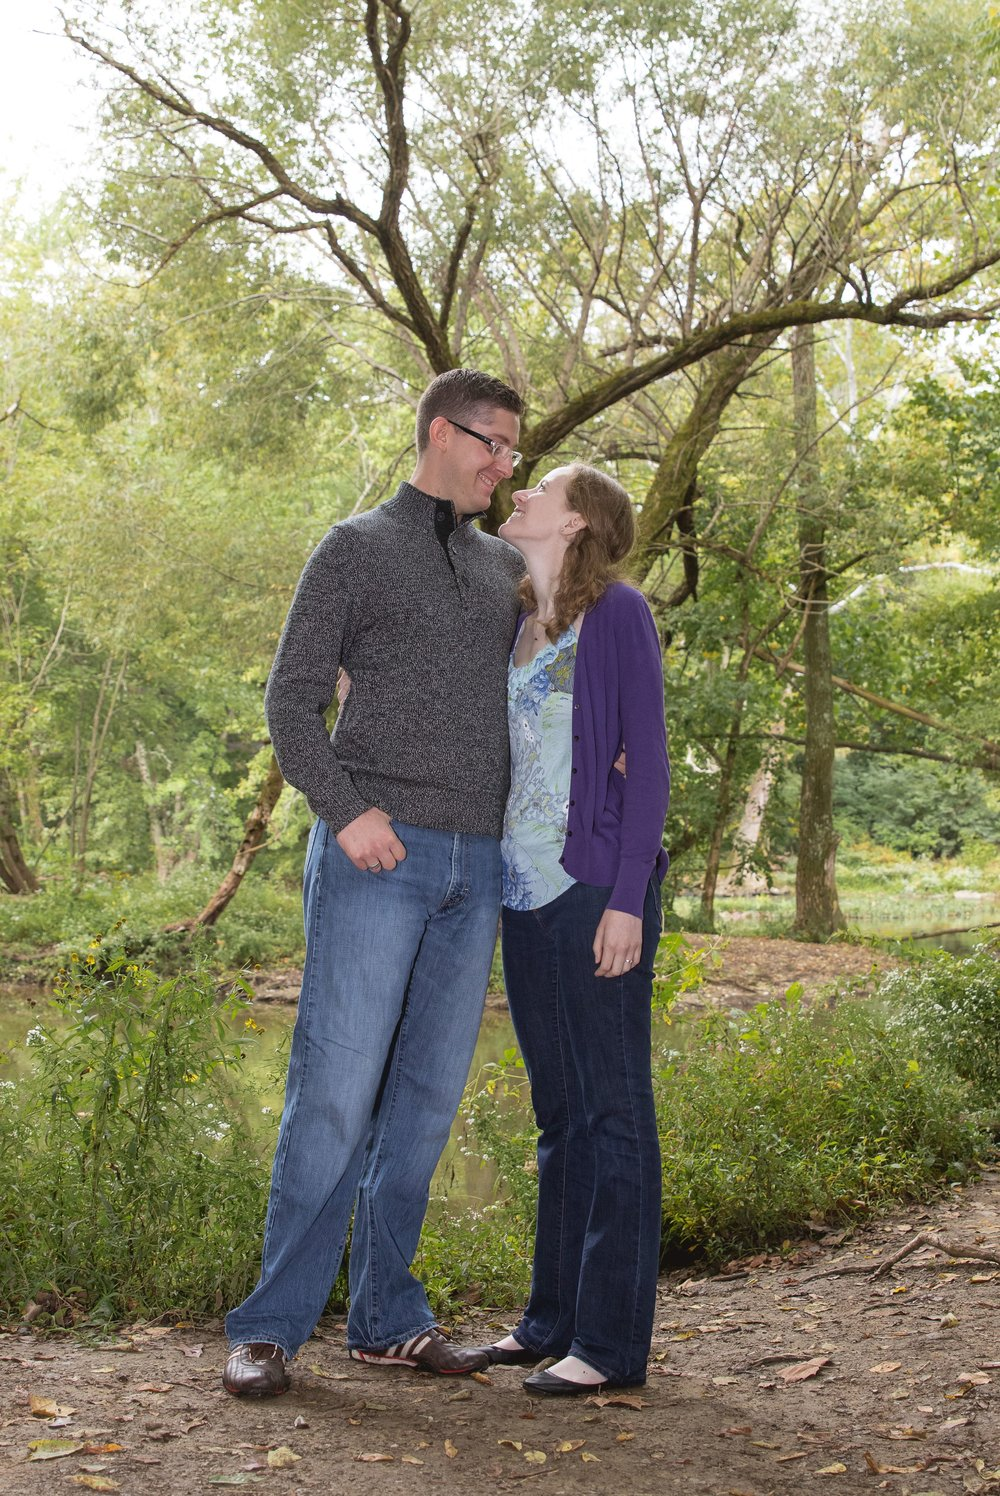 highbanks-metro-park-lewis-center-engagement-portraits-gahanna-columbus-photographer-studio-006.JPG